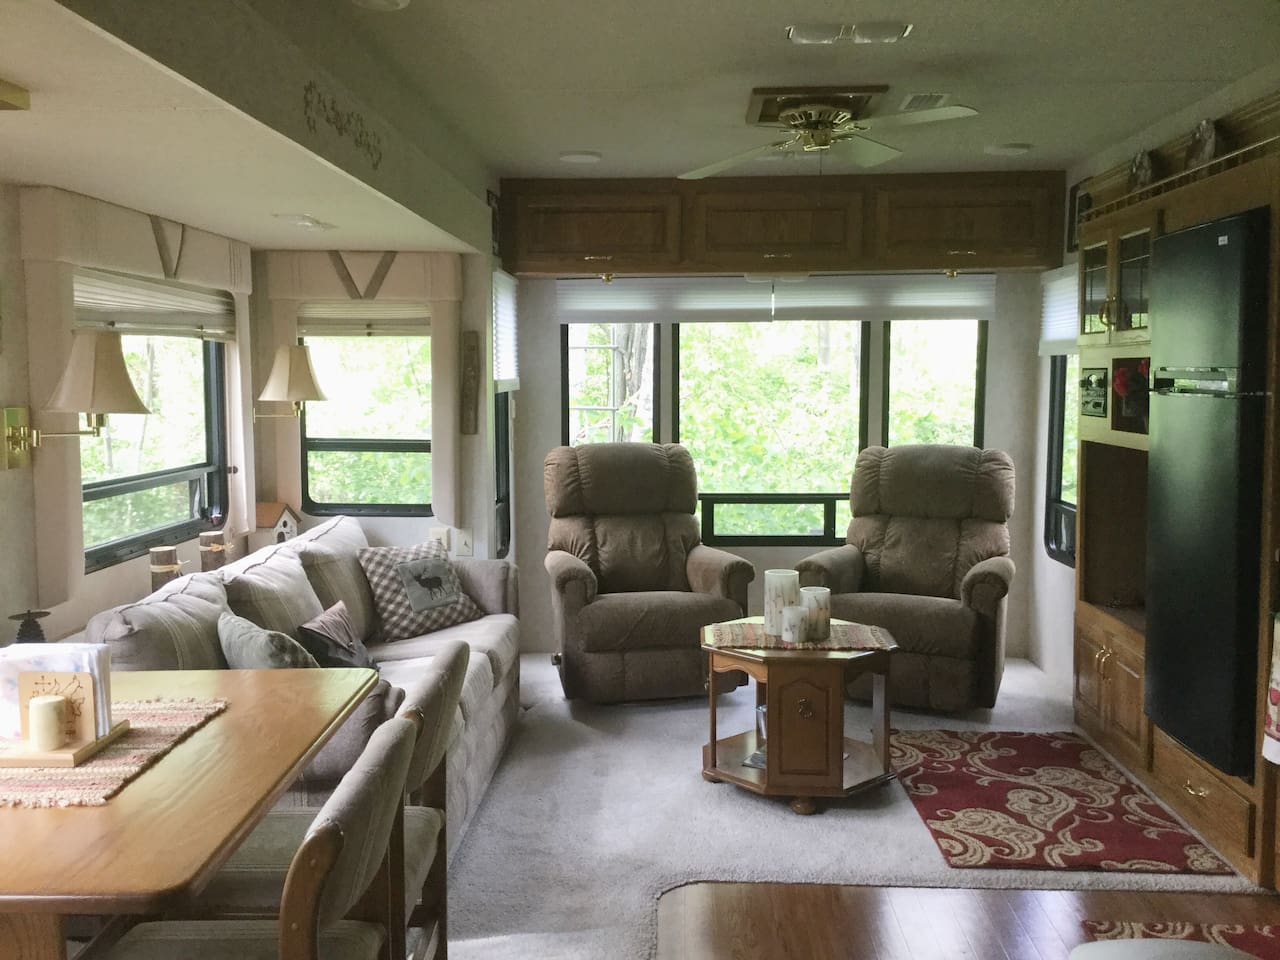 Spacious Living area with beautiful views of the woods